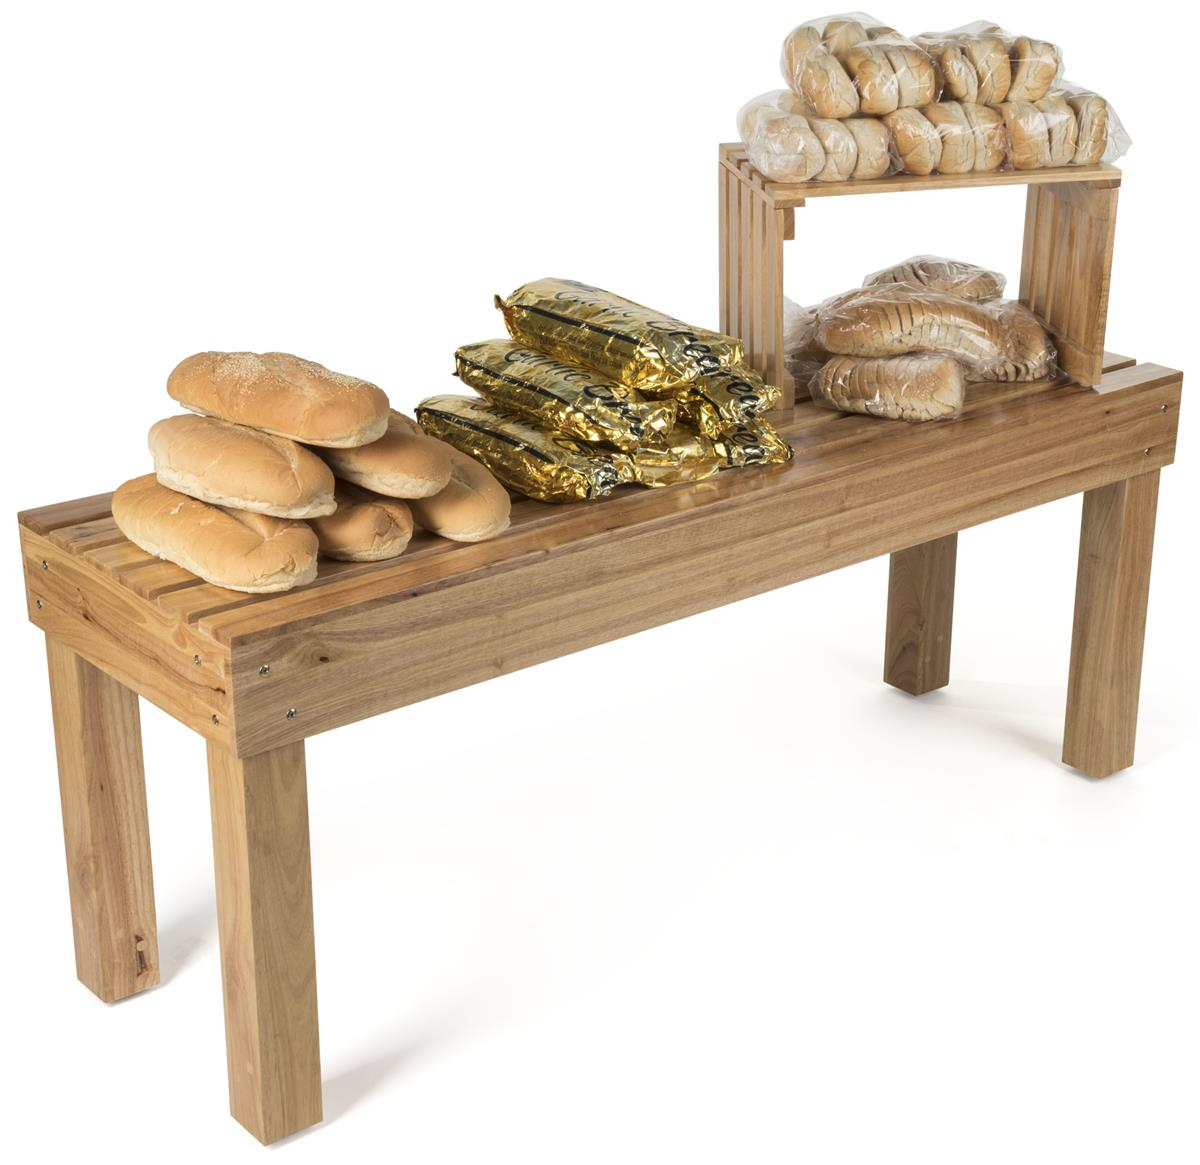 Stacking Tv Tables ~ Wooden stacking tables table topper included